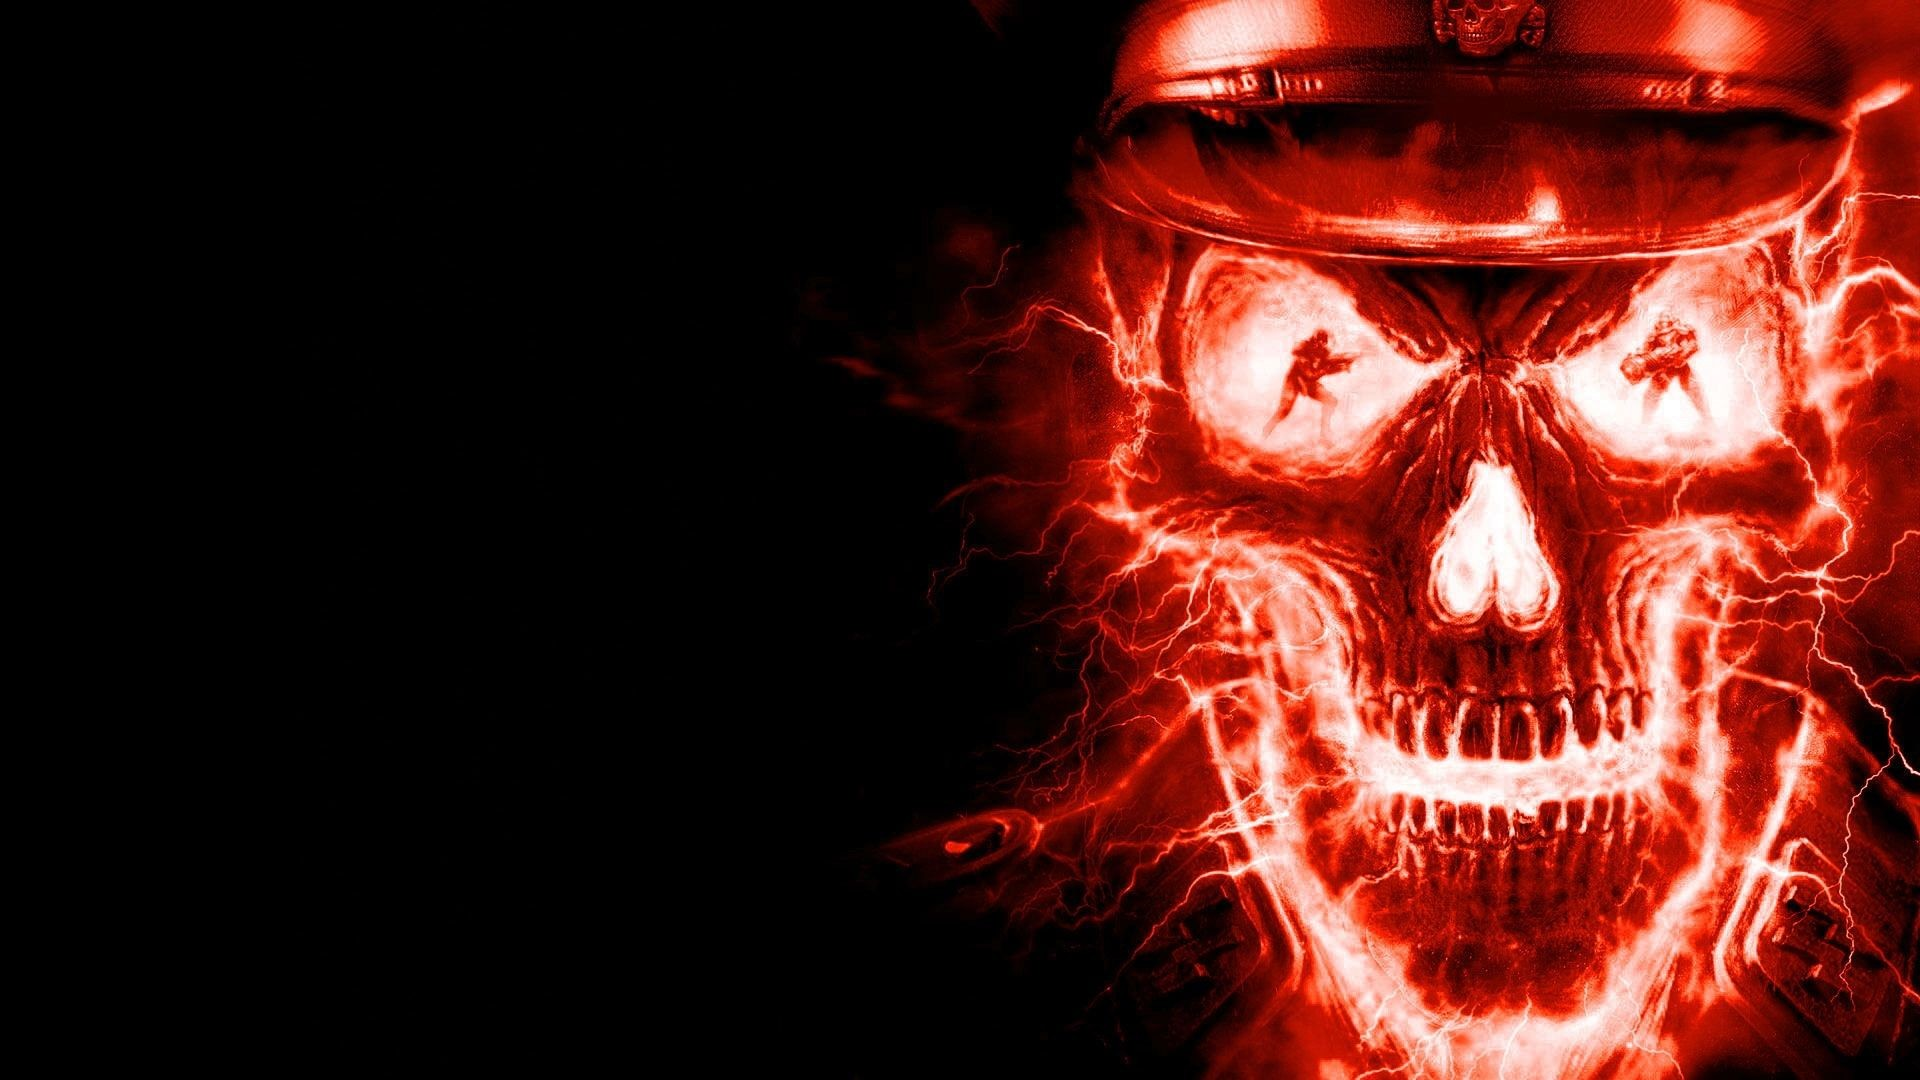 1920x1080 AWESOME SKULLS N STUFF Images Awesome Skull HD Wallpaper And Background Photos